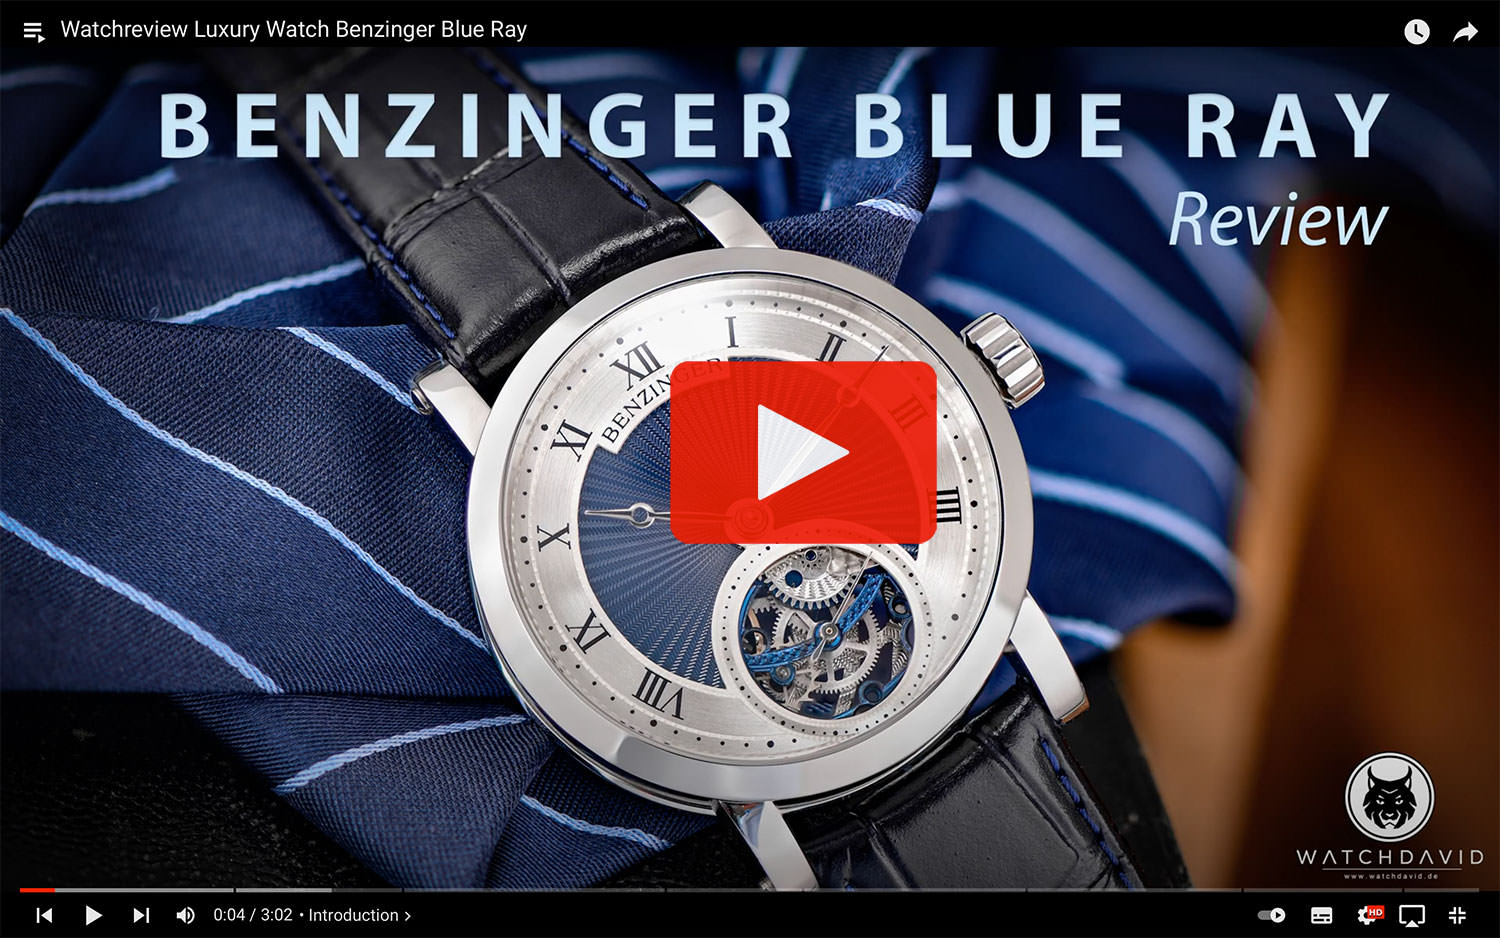 Watchreview Luxury Watch Benzinger Blue Ray 4K YouTube by WATCHDAVID